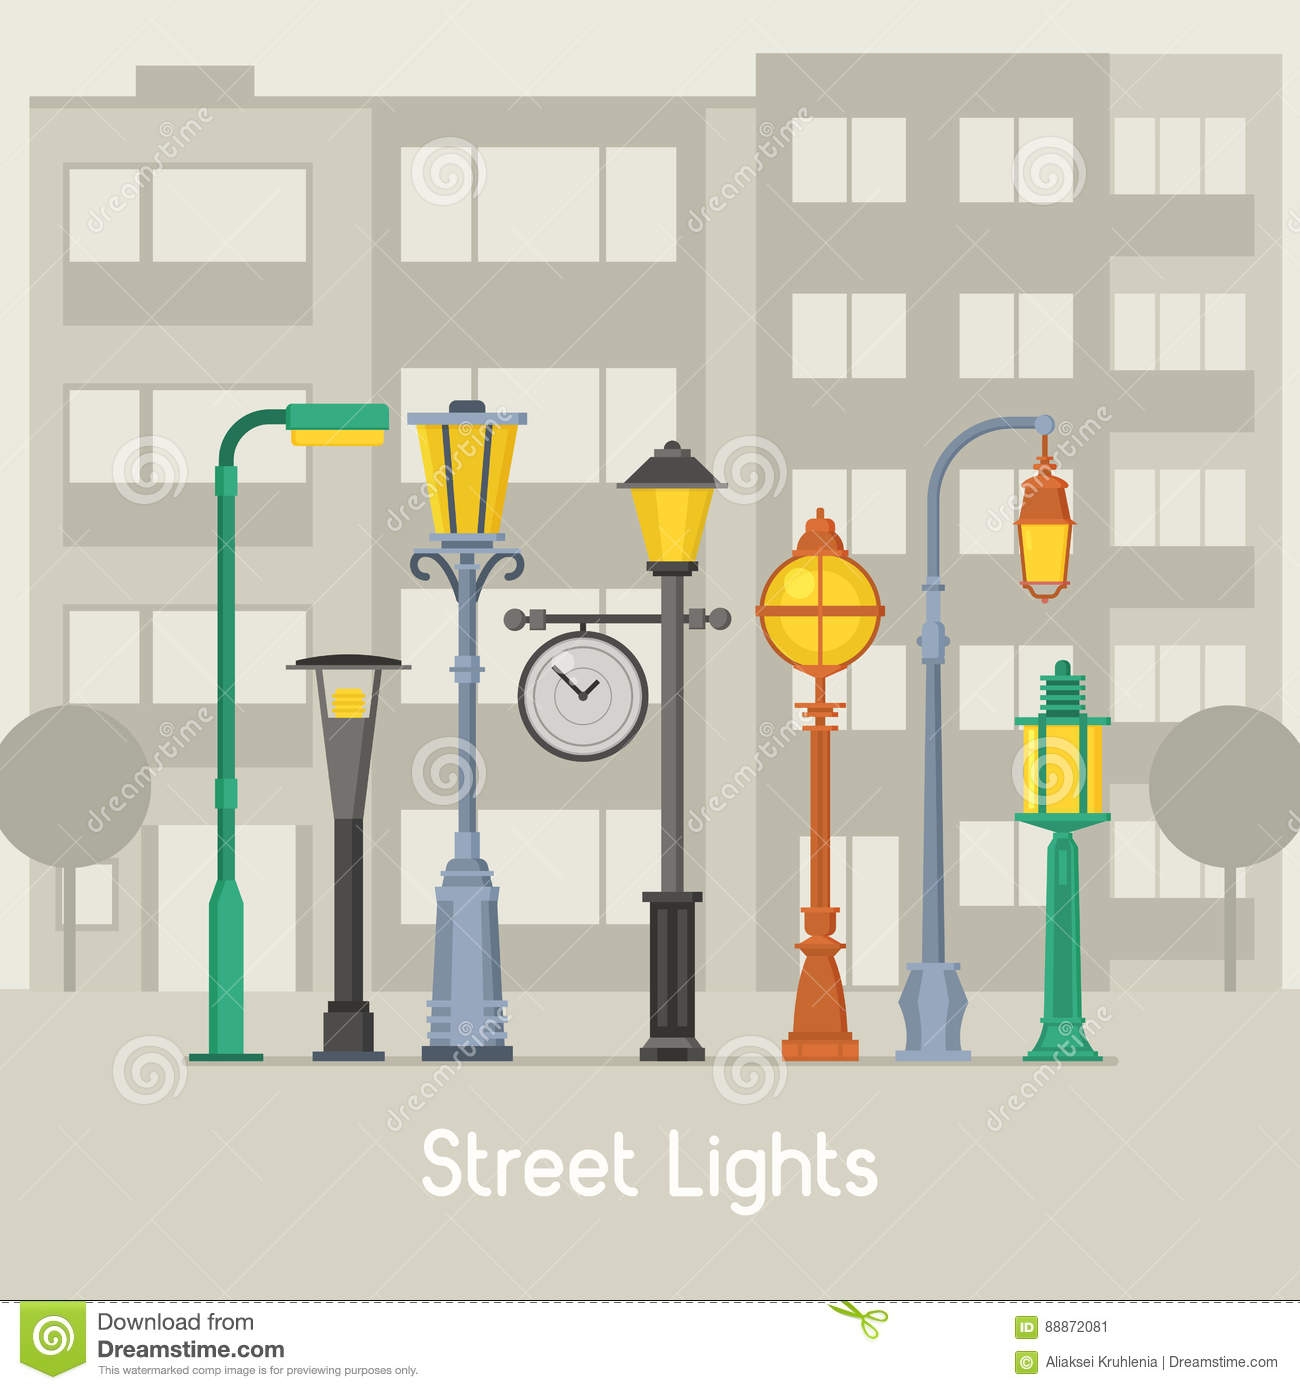 Street Lamps and Lamp Posts Banner